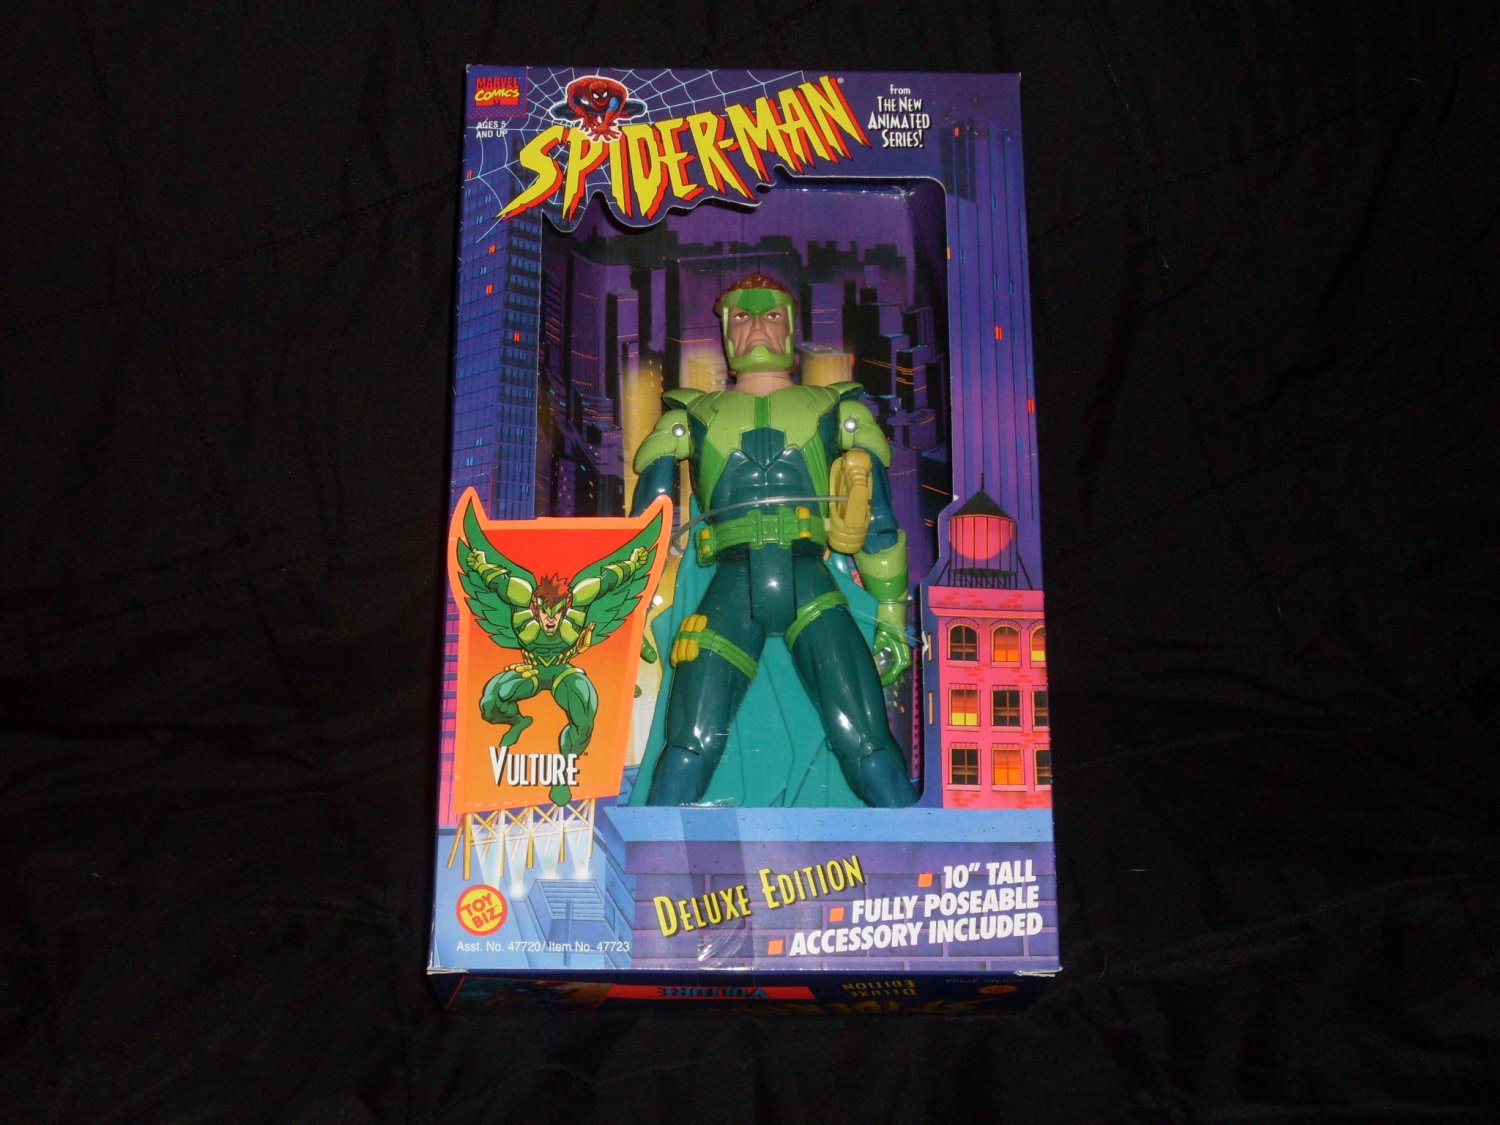 "10"" TALL VULTURE FROM SPIDER-MAN ANIMATED SERIES (1994) Added Shipping Cost Outside USA"